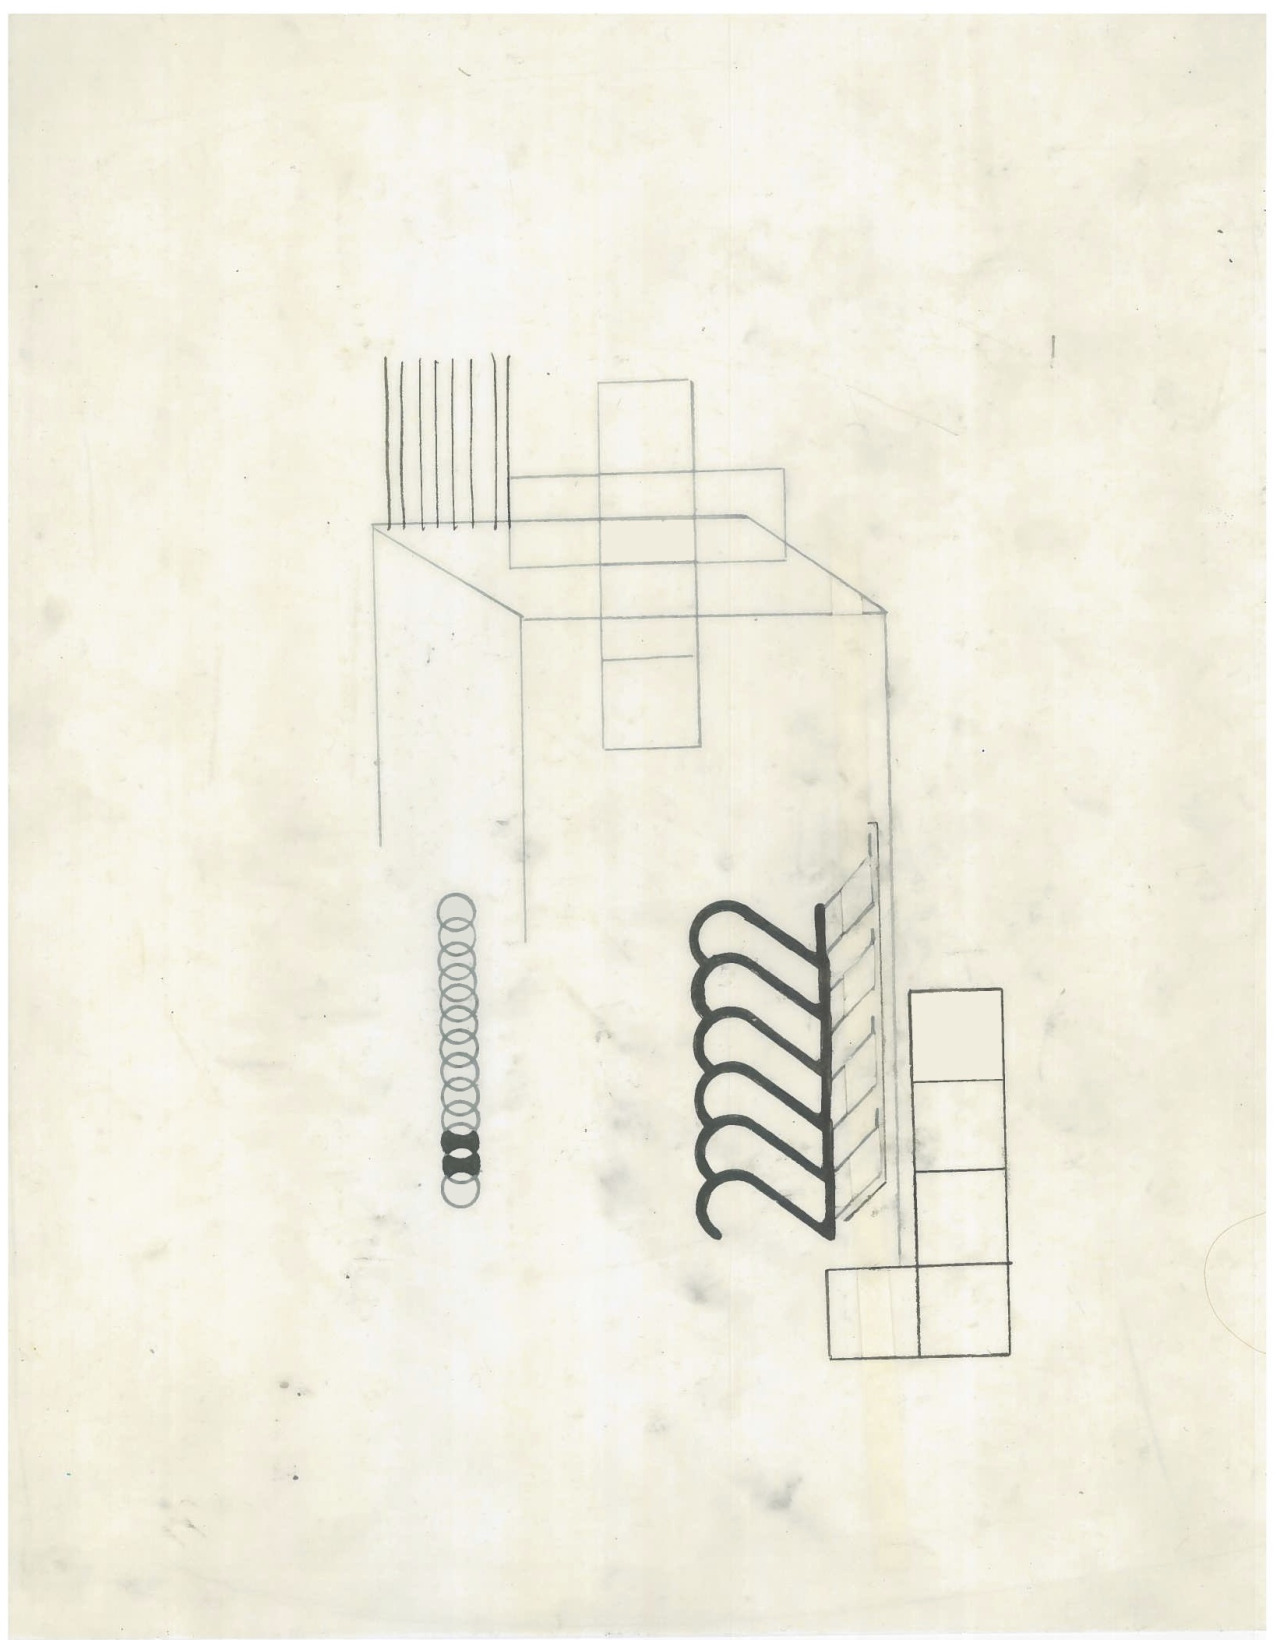 Untitled (the city, observations 19A)  Pencil, collage and layered oiled fabriano paper.   279mm x 216mm  December 2013